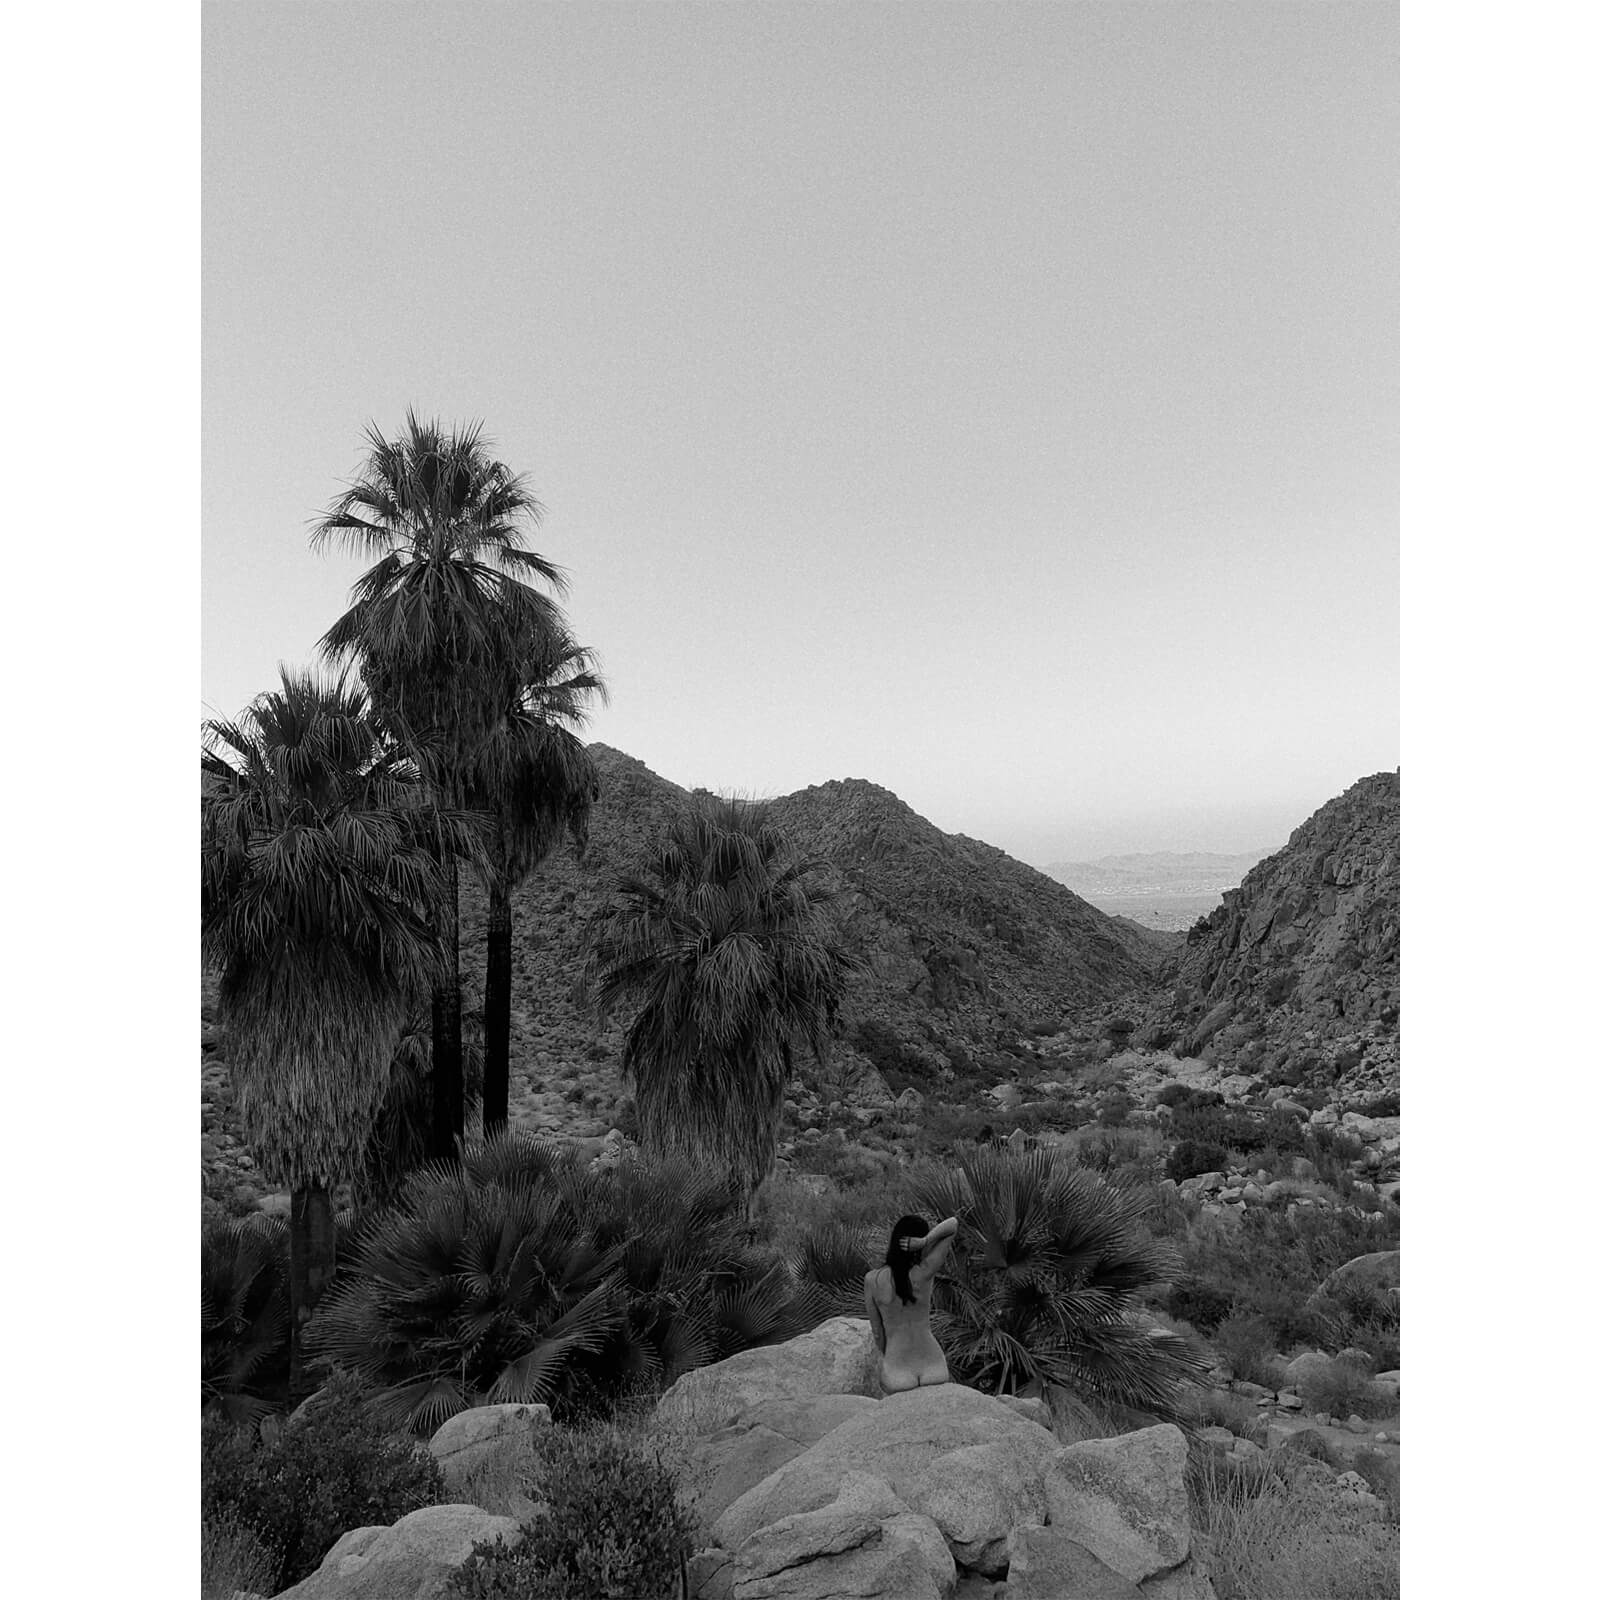 Michael Magers | Untitled, Joshua Tree, 2020 | MIRU Photo d'Art